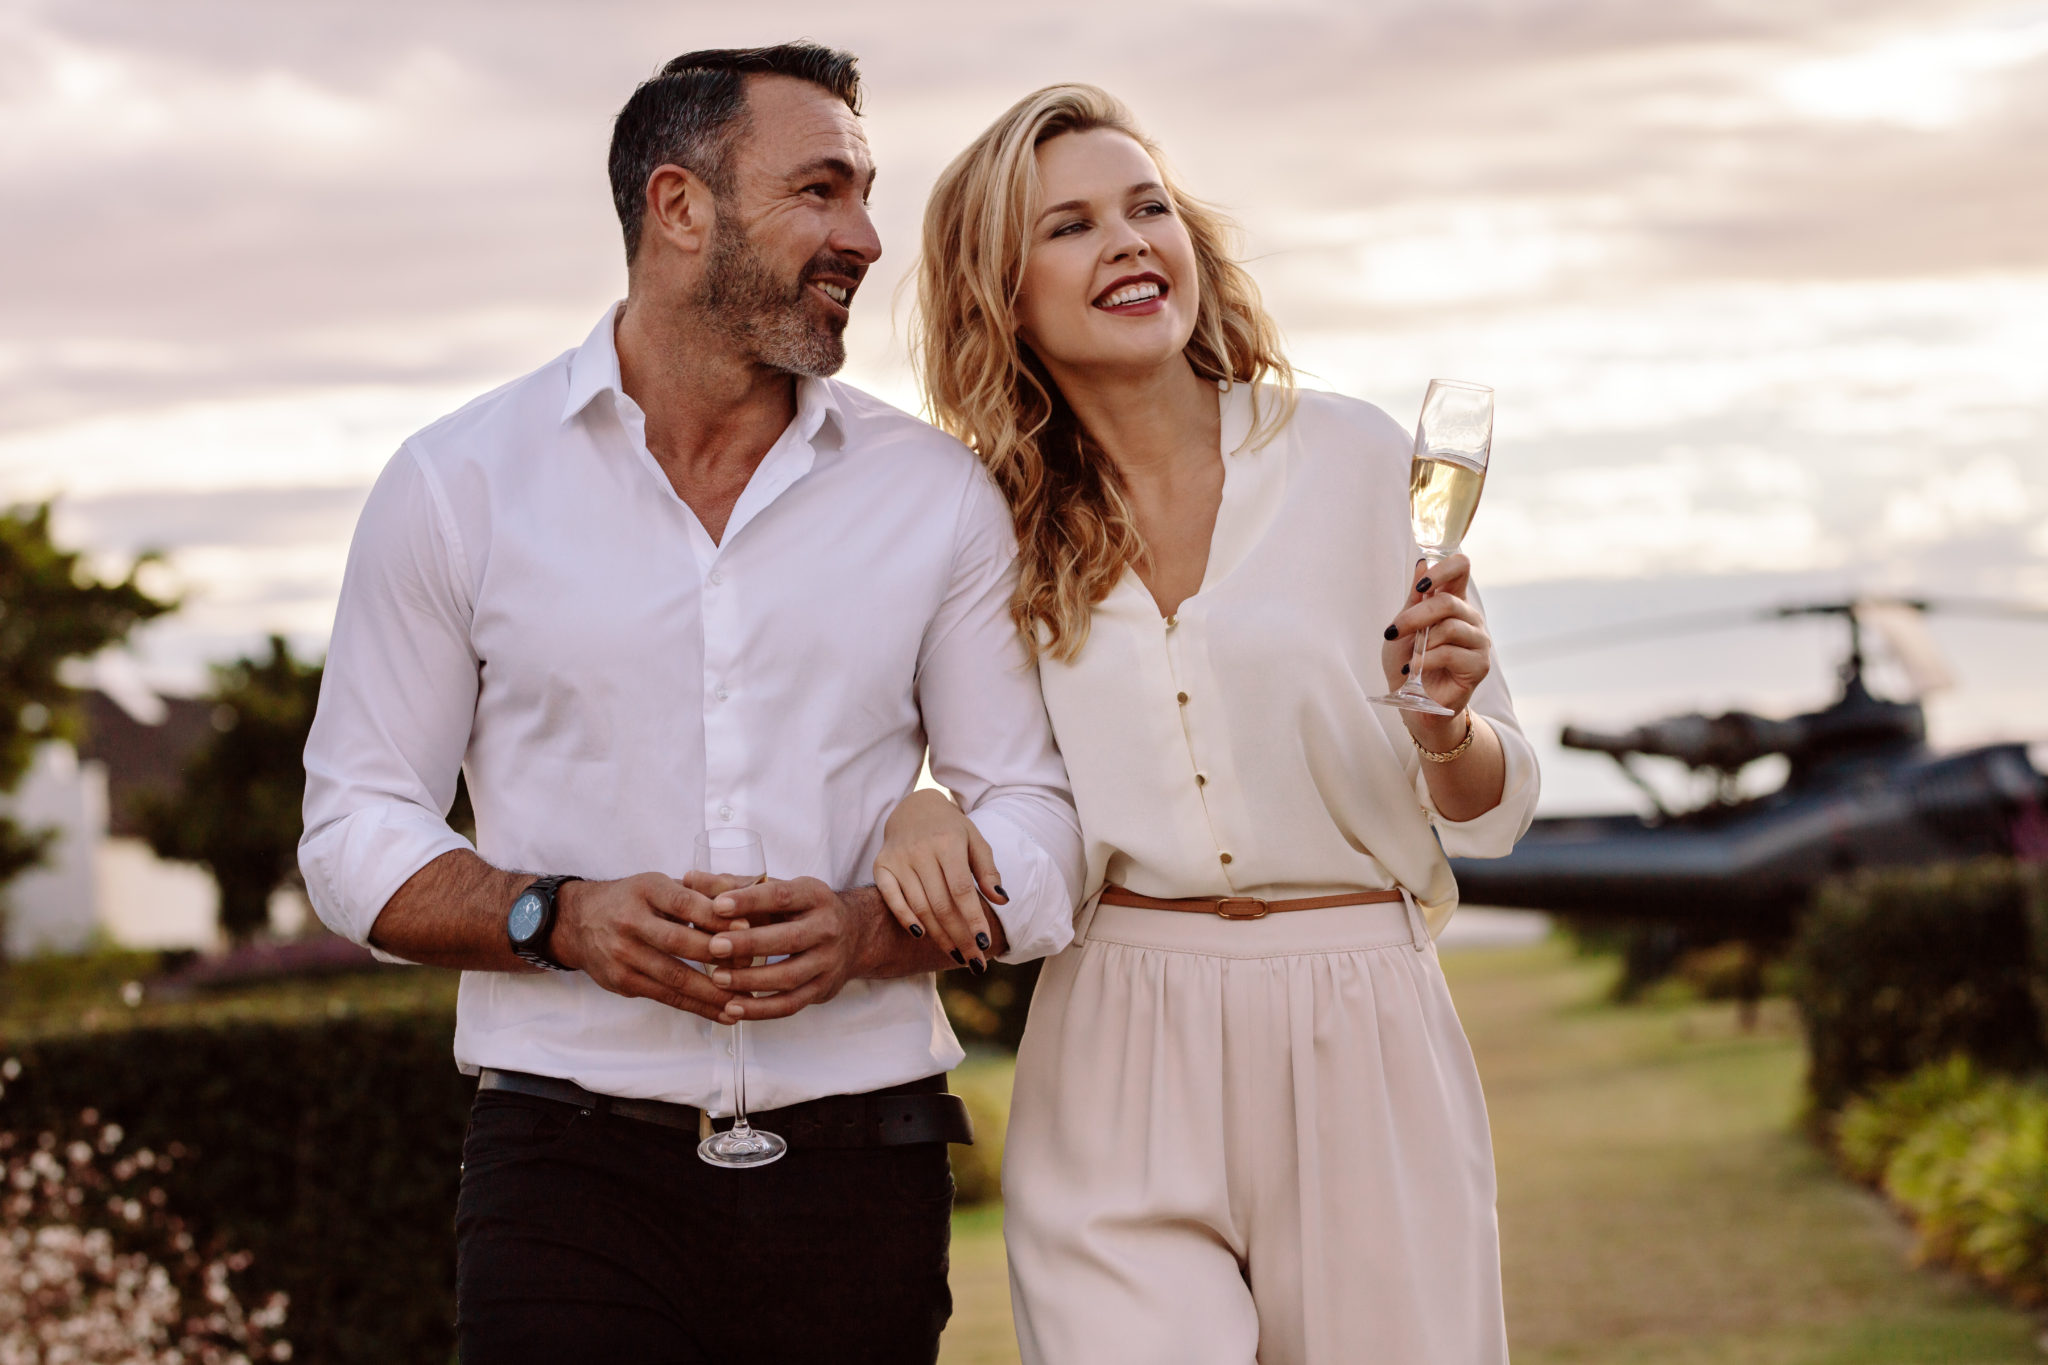 Propose in Style with our Helicopter Tour